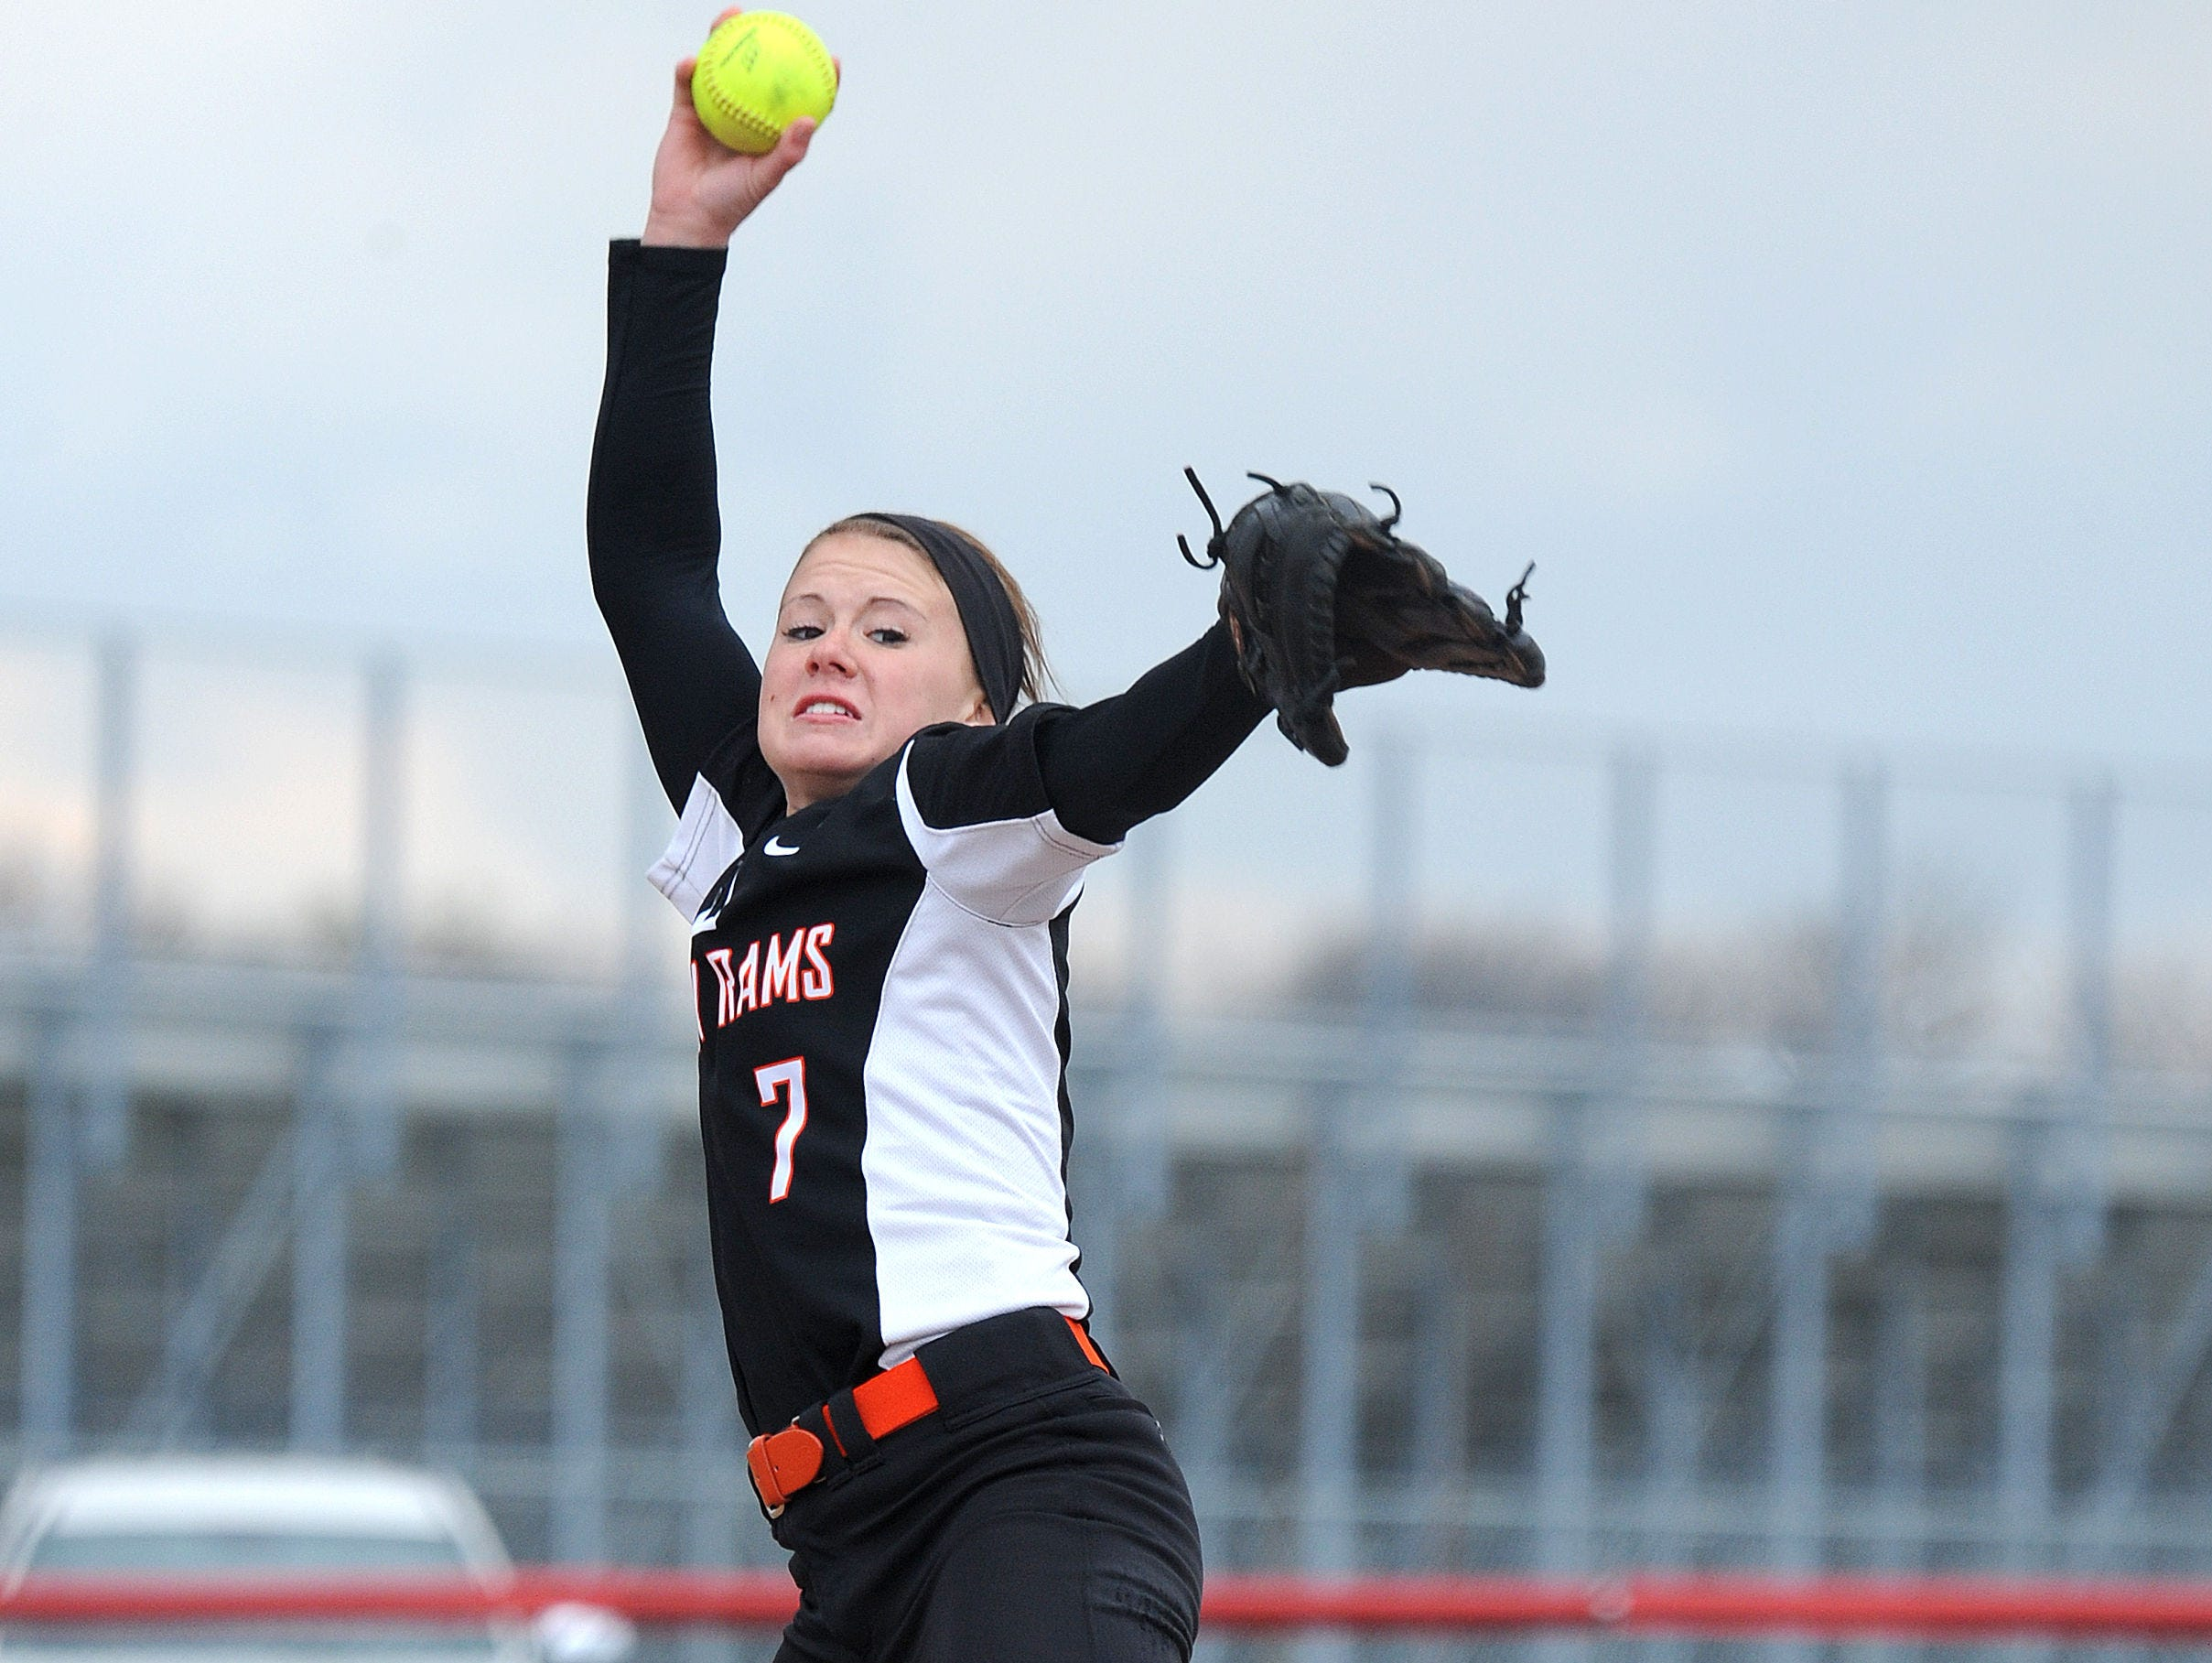 Upper Sandusky's Blayc Hacker pitches their game against Bucyrus Wednesday evening. Hacker pitched a no hitter.